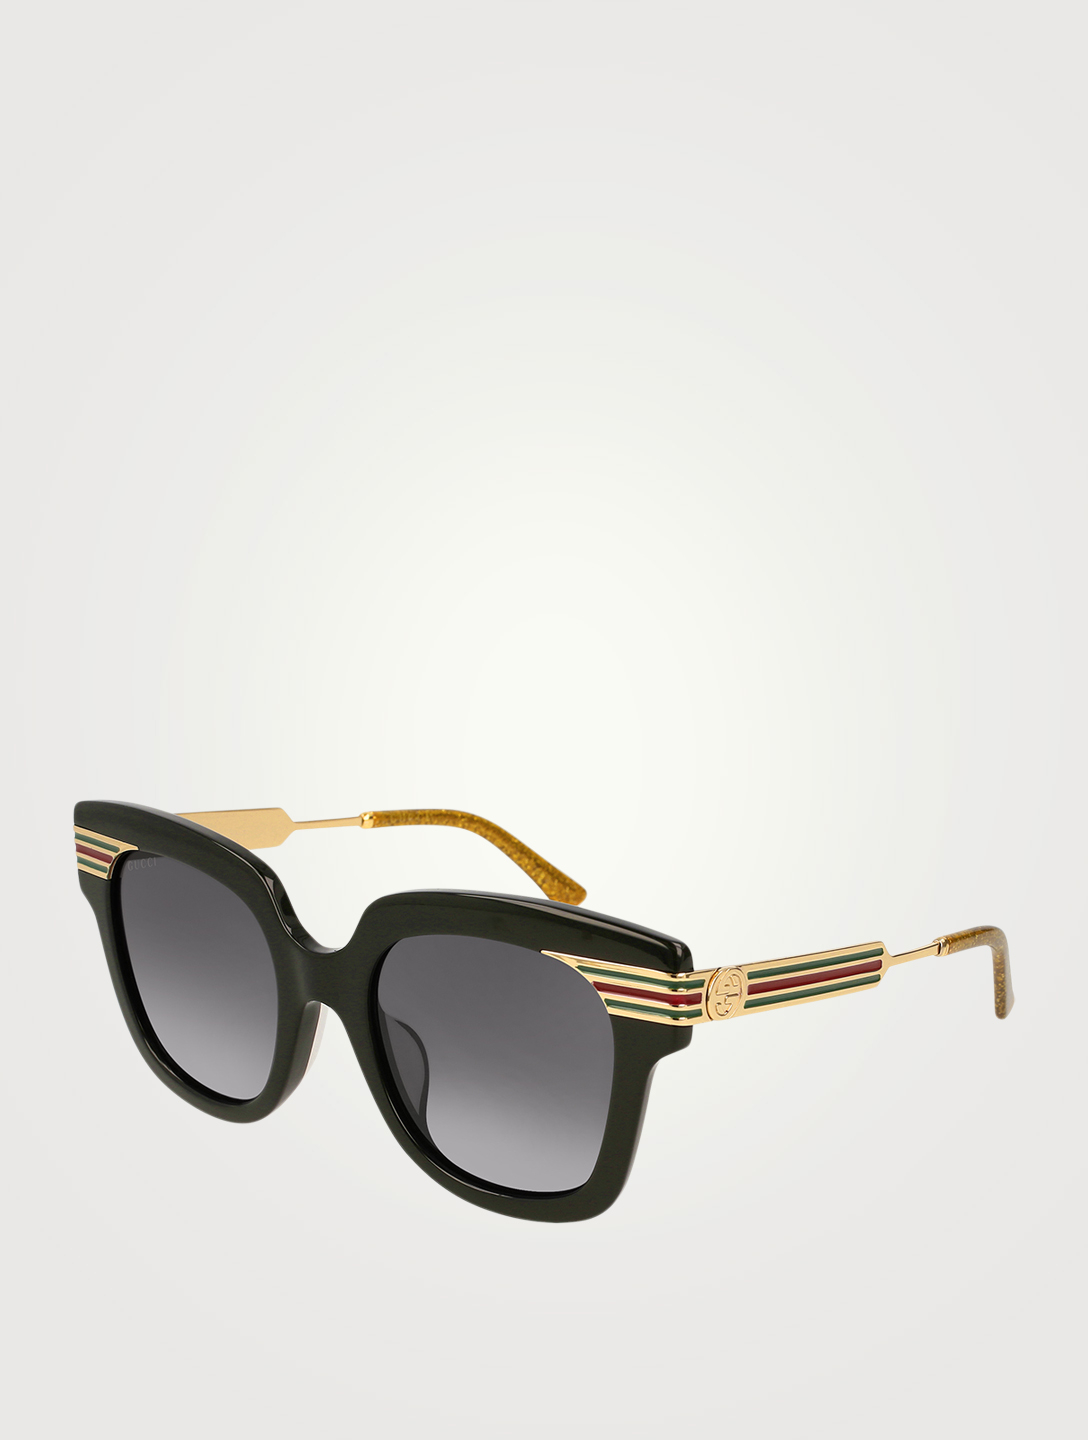 GUCCI Oversized Square Sunglasses With Vintage Web Womens Black